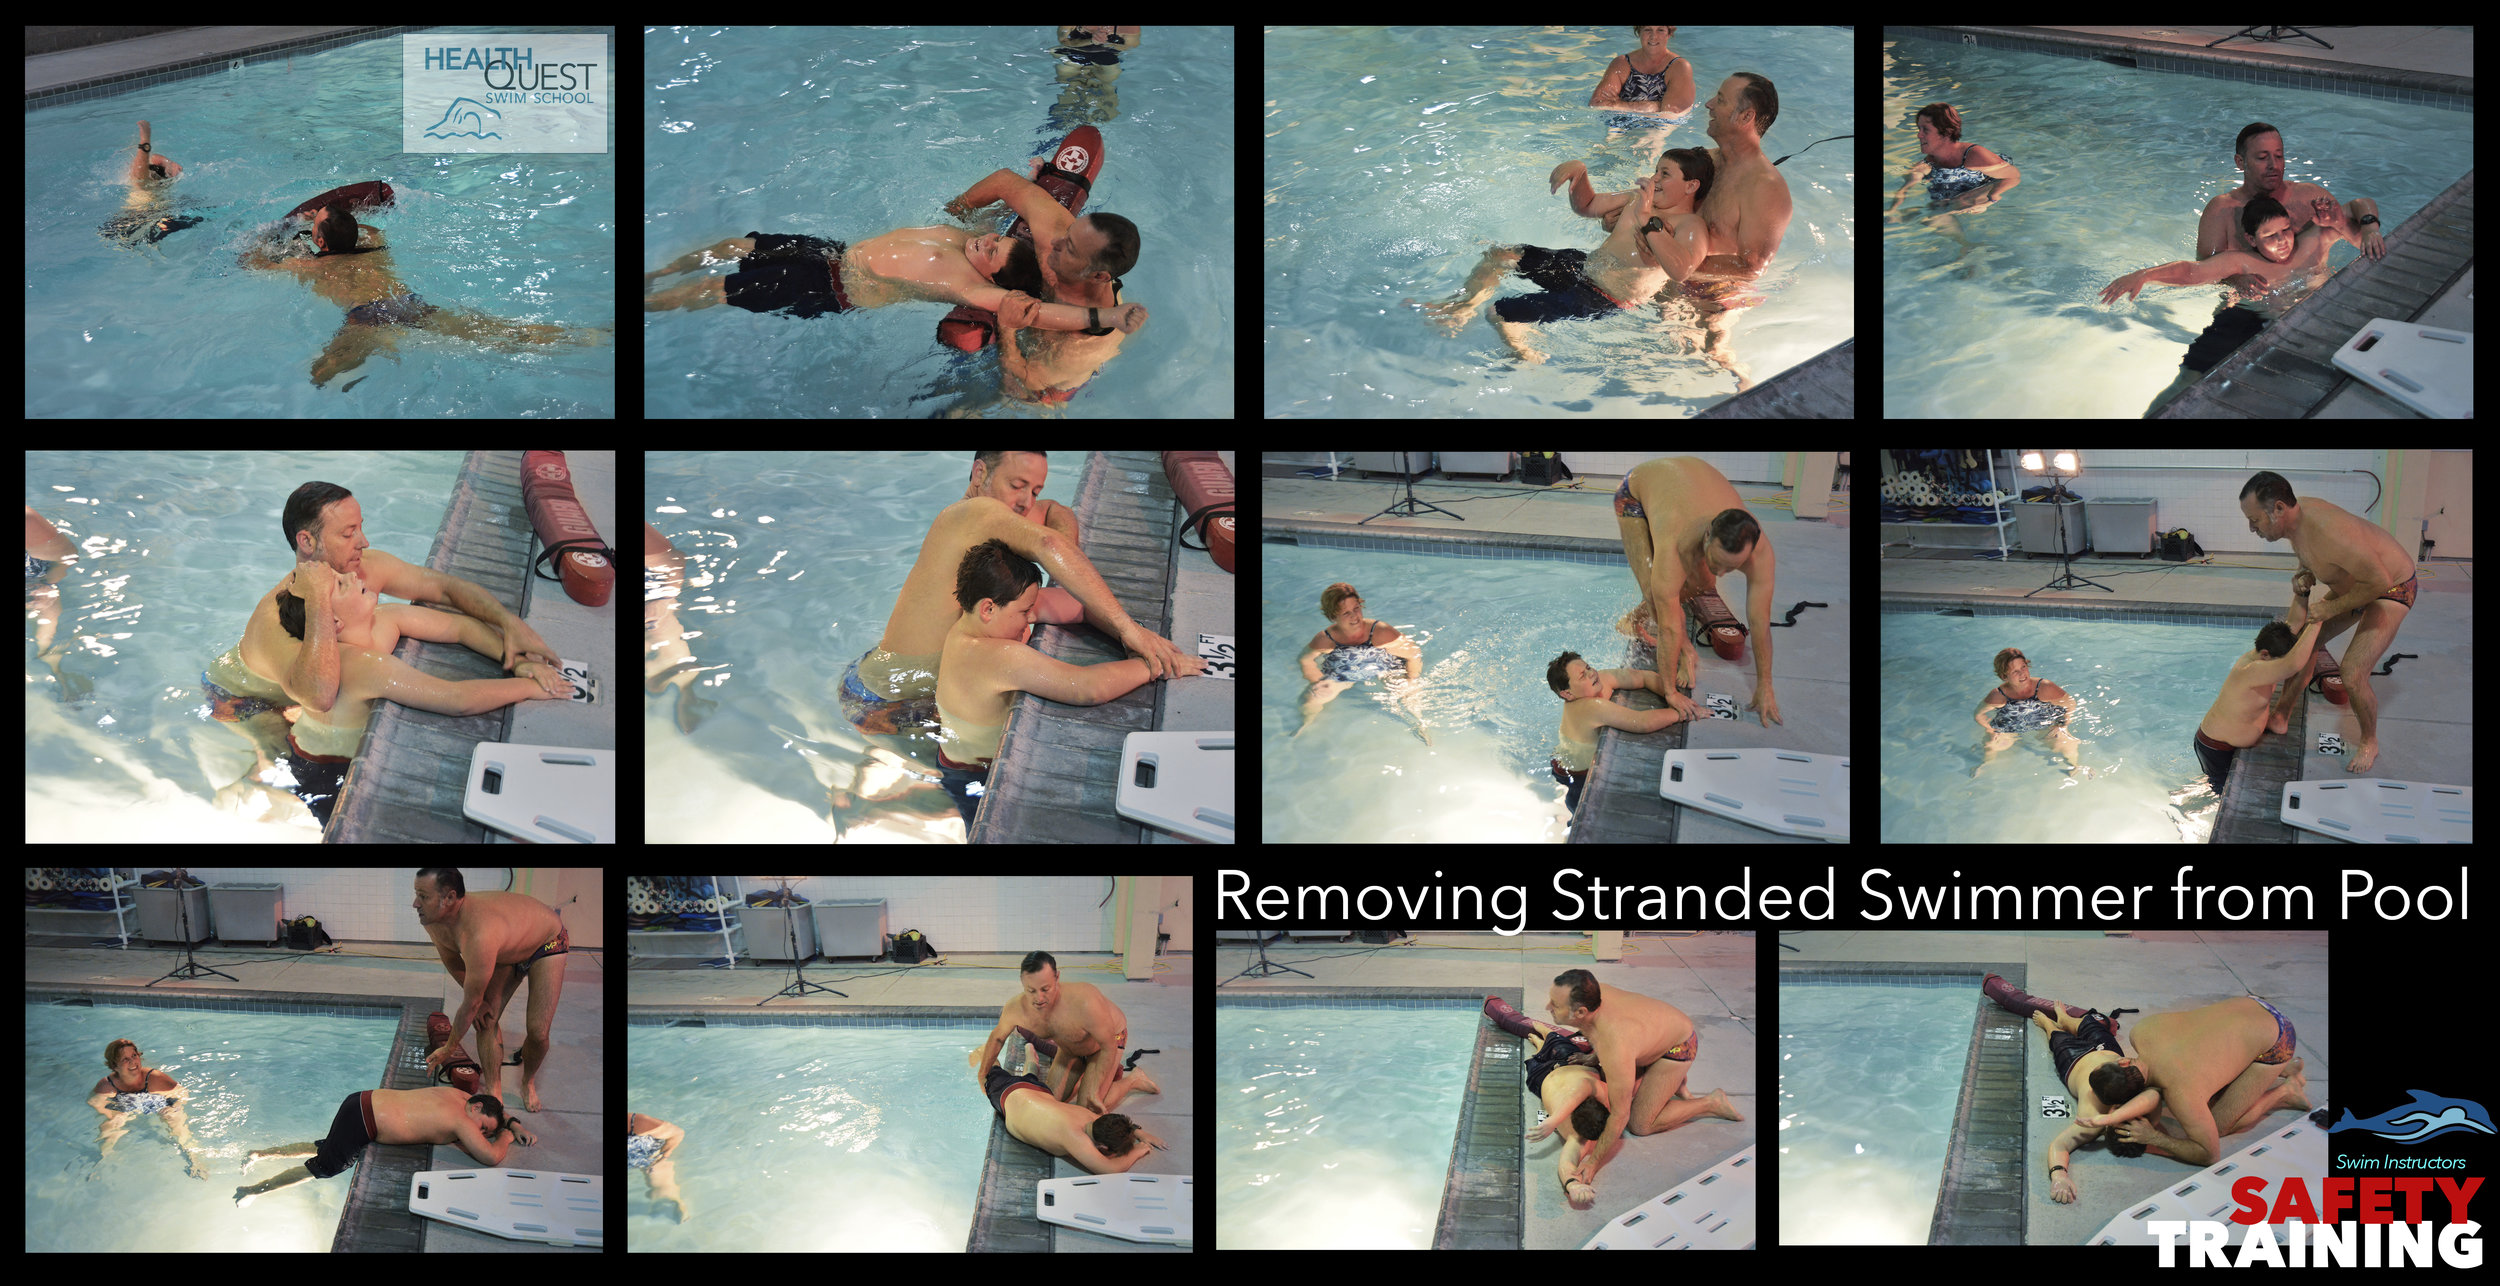 The tricky technique of staying safe while retrieving a distressed swimmer from within the pool and pulling the swimmer out of the pool were demonstrated by Tracy and Chris.